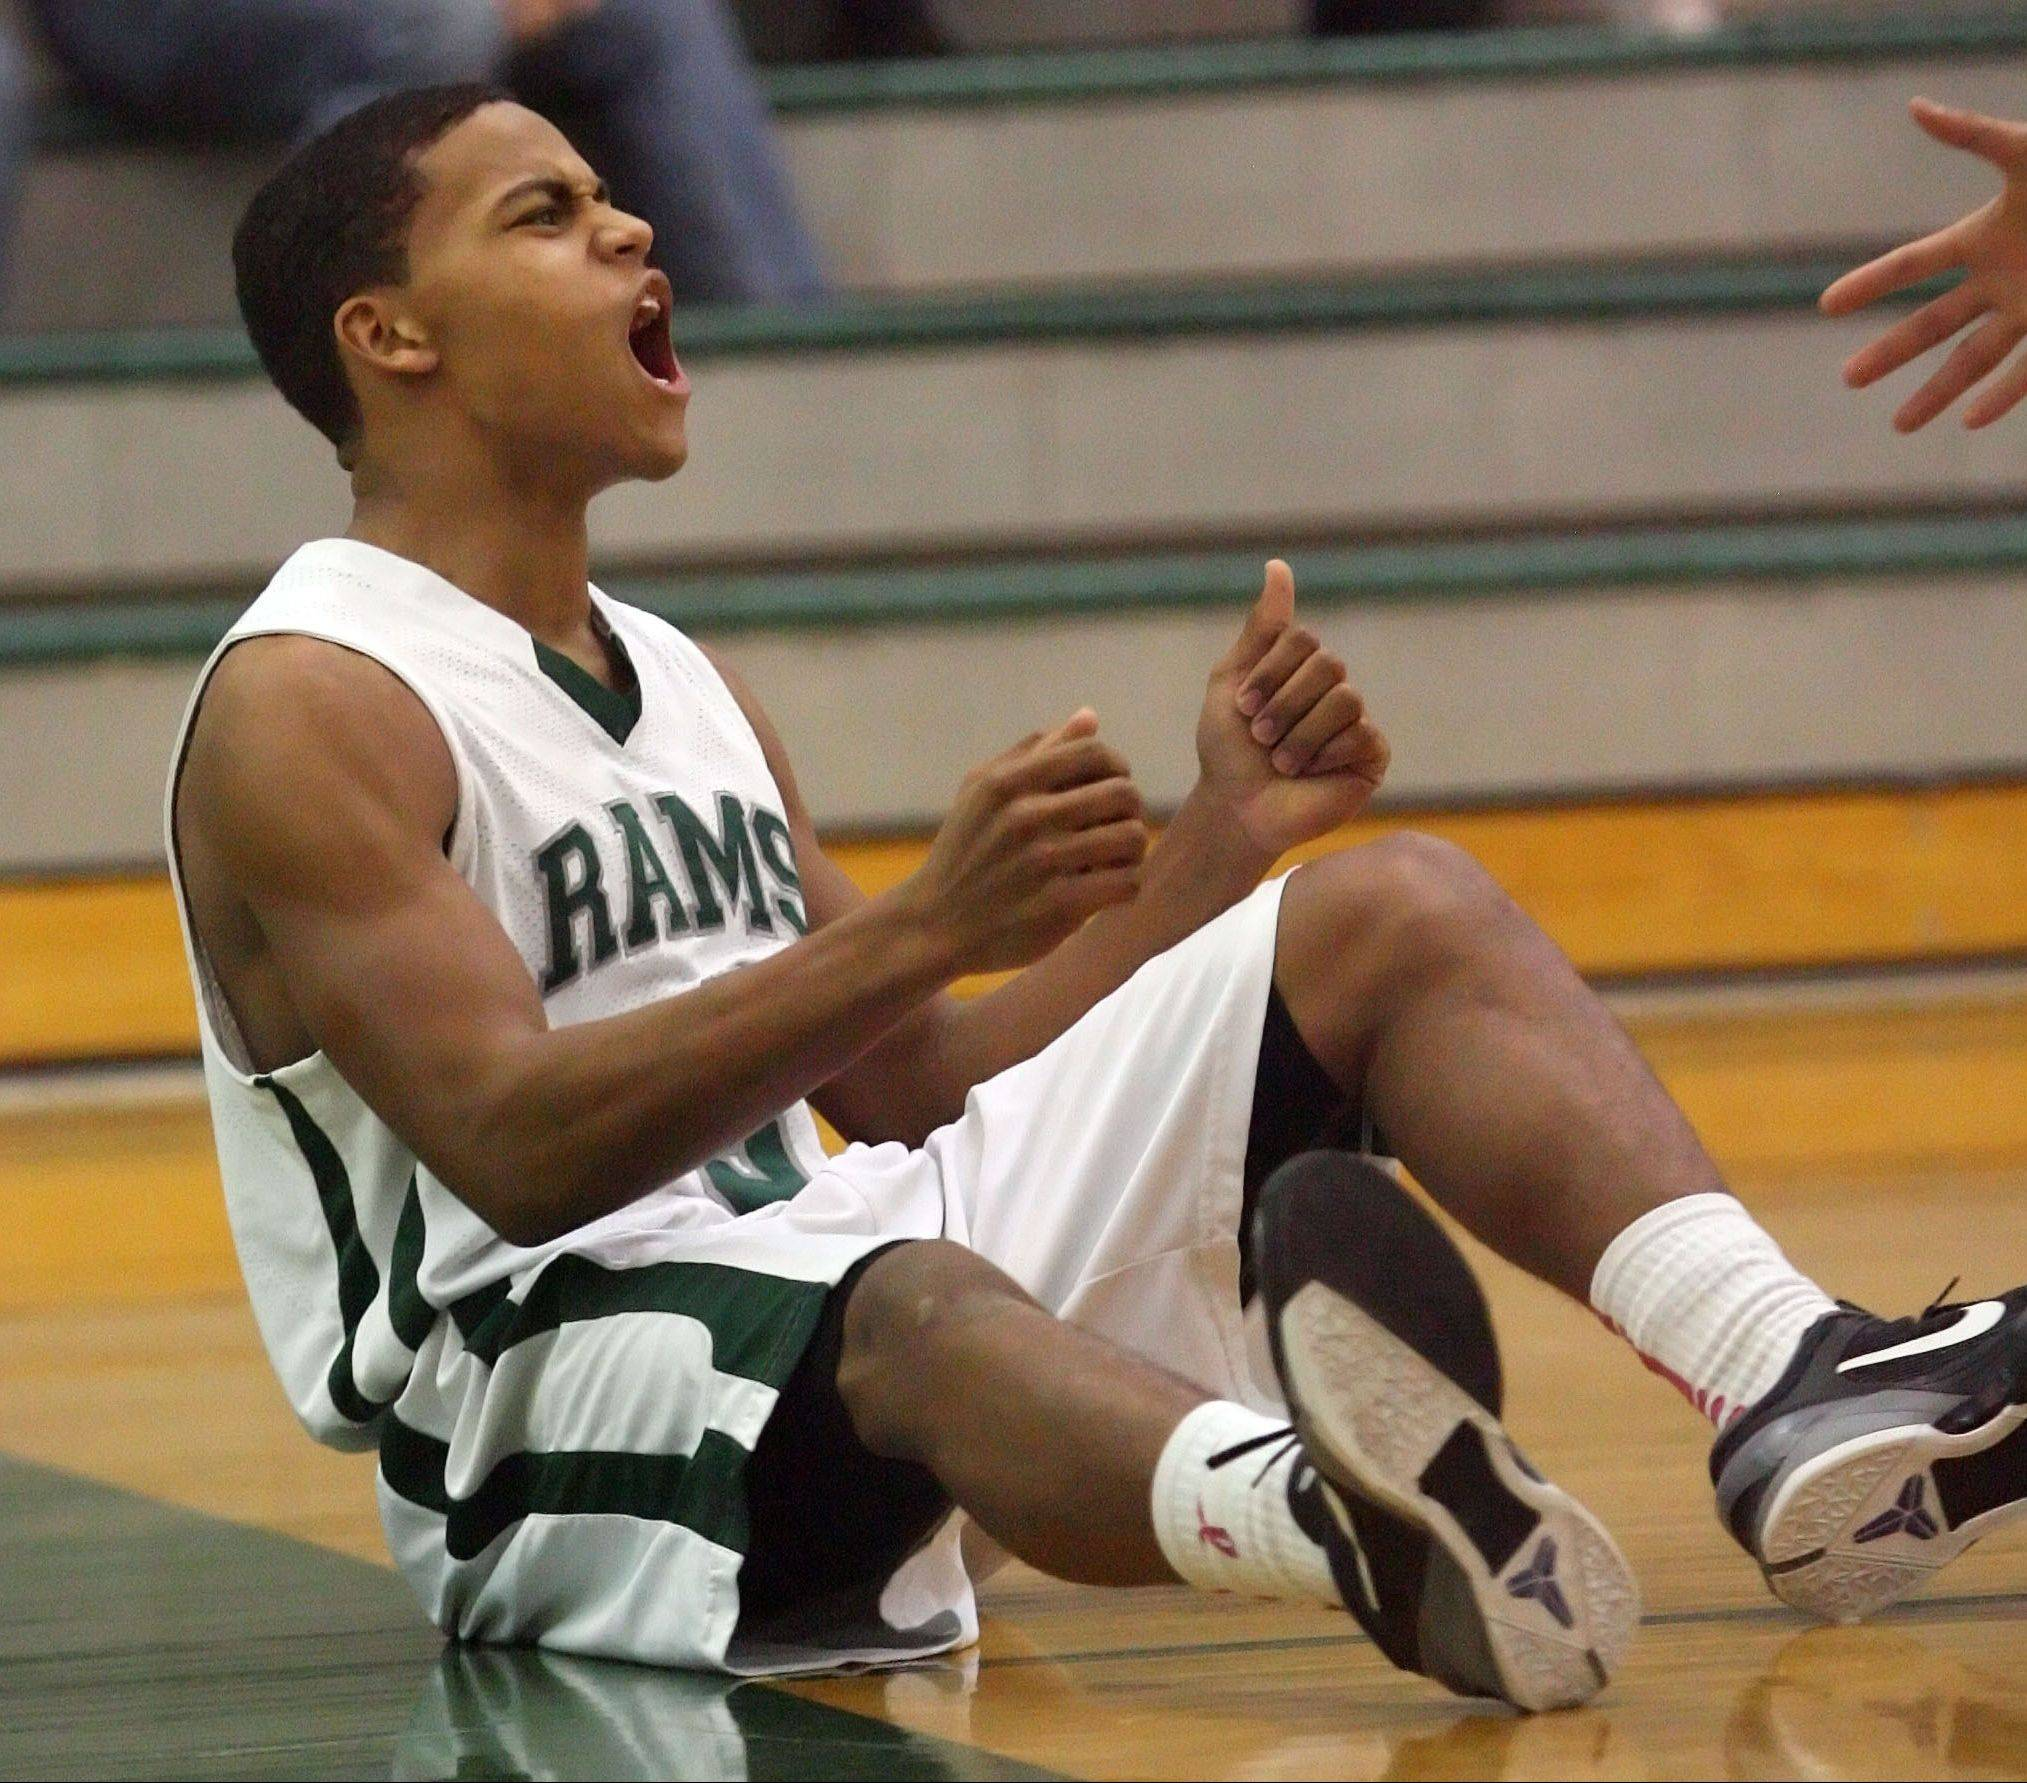 Grayslake Central's Malcolm Reed cheers after getting fouled by Cary-Grove on Tuesday night at Grayslake Central.